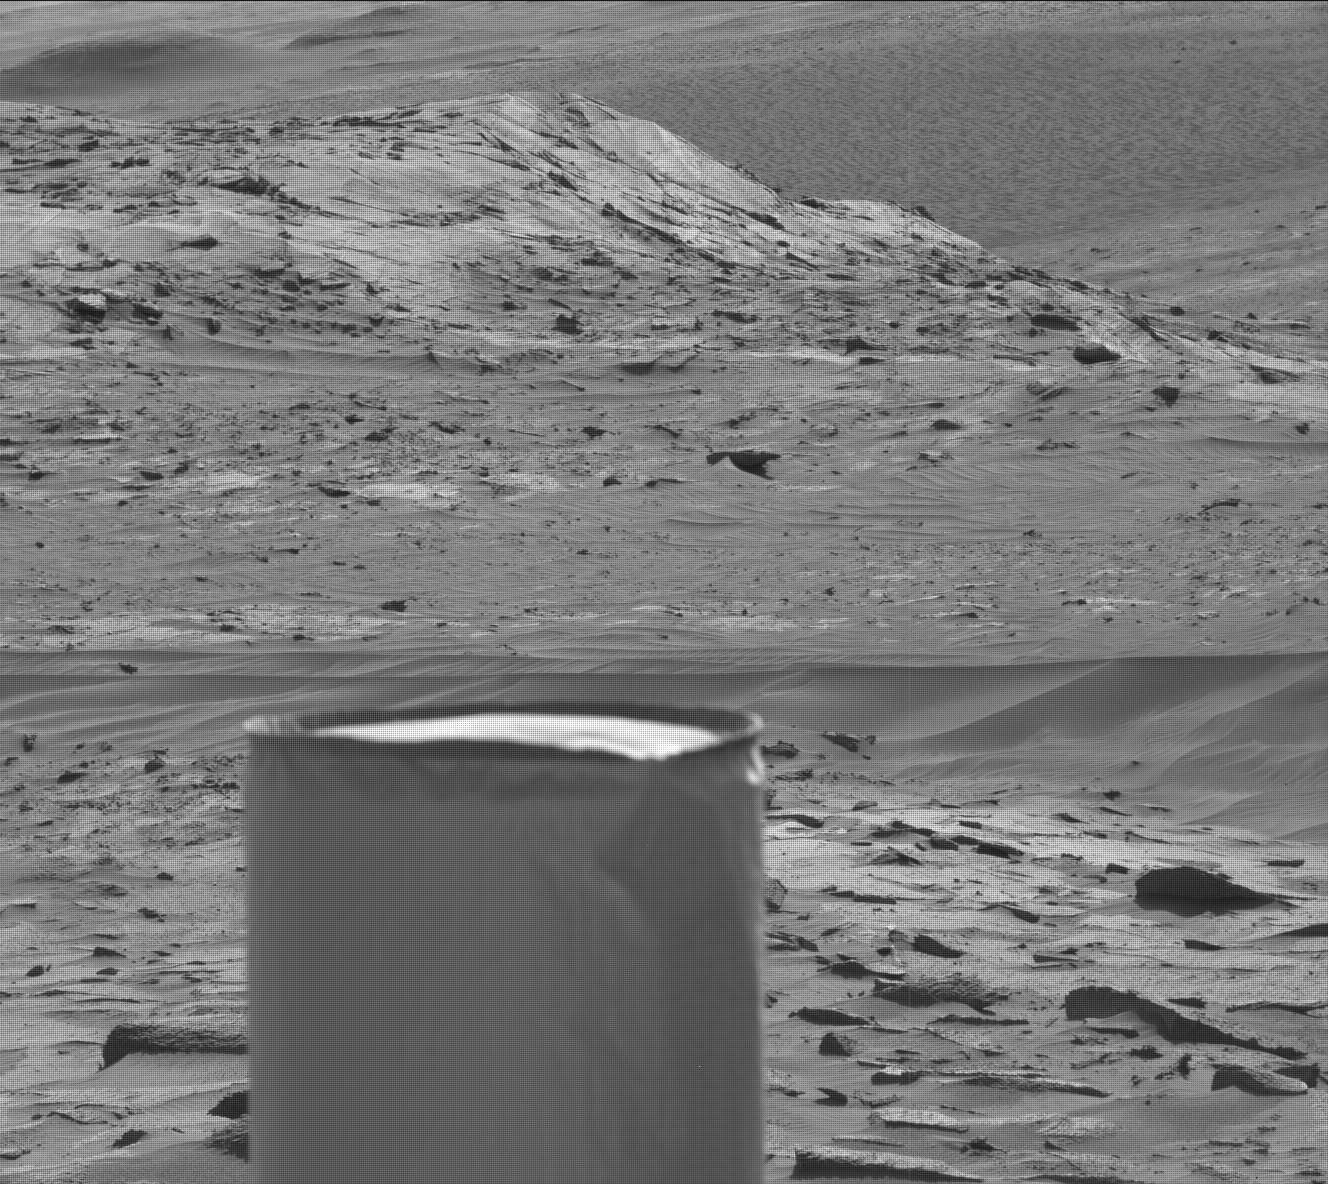 Nasa's Mars rover Curiosity acquired this image using its Mast Camera (Mastcam) on Sol 3225